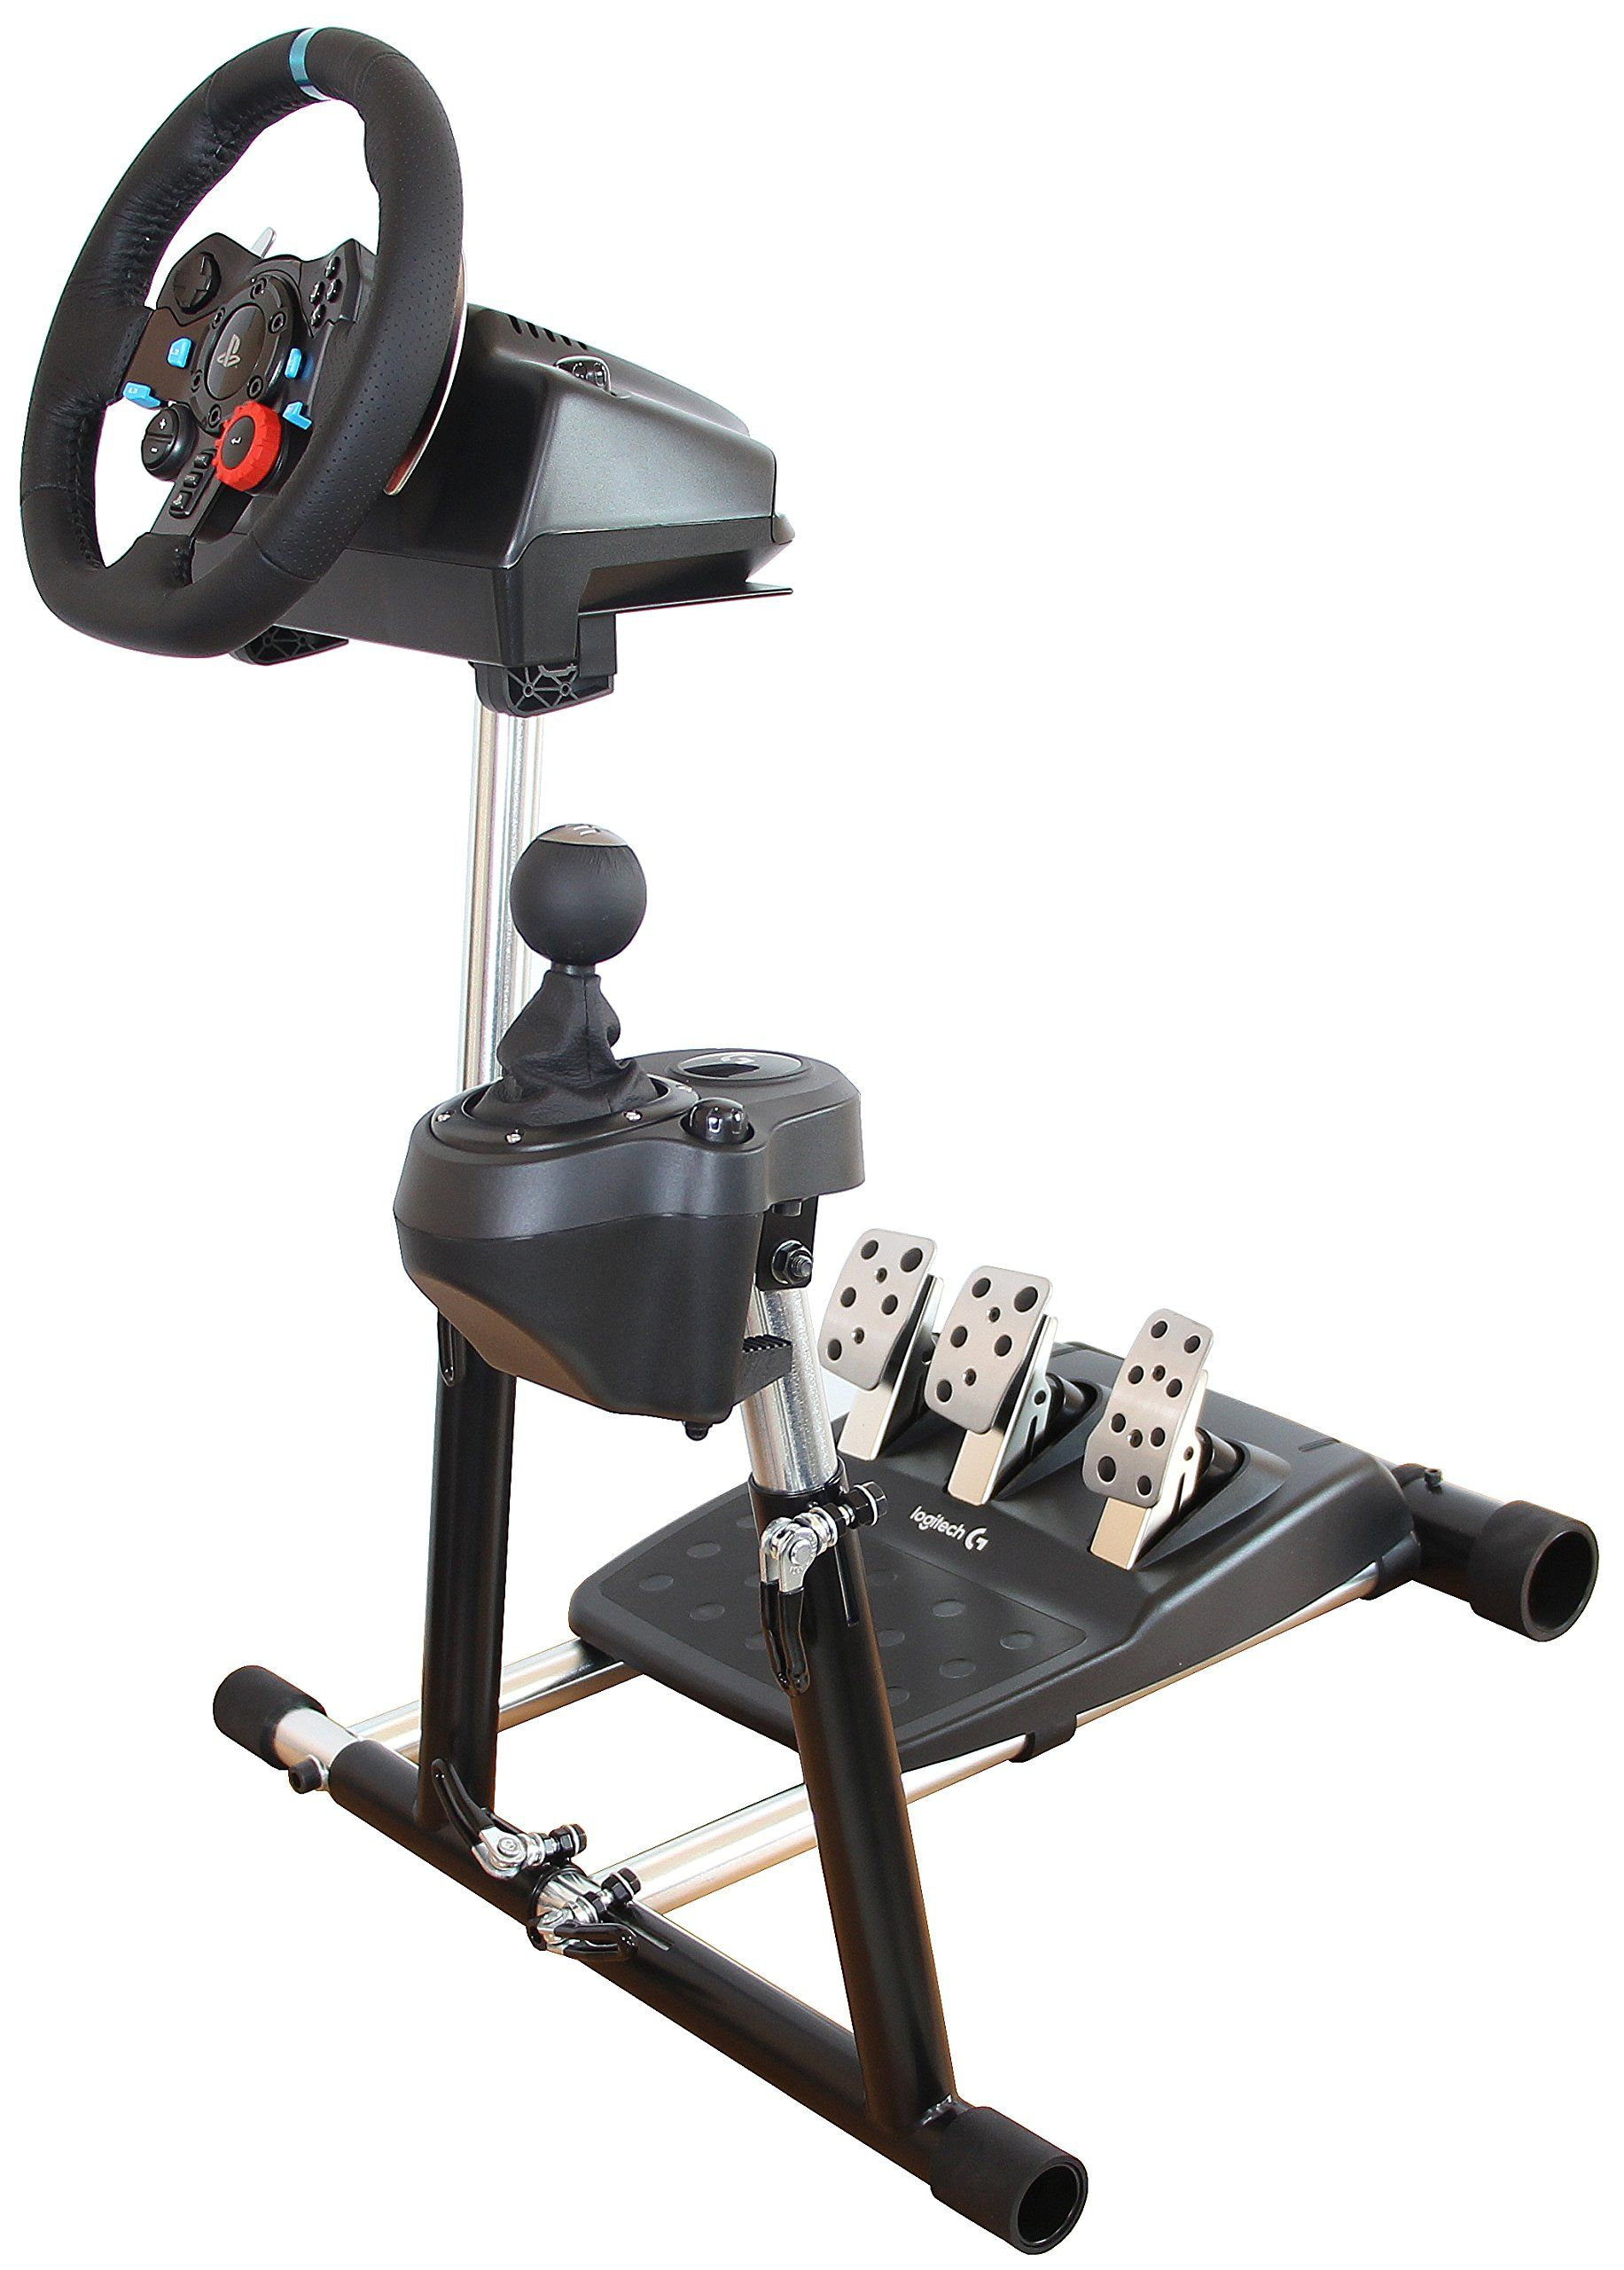 7dff12c2d4 SuperG Steering Wheel Stand with RGS shifter mount Logitech G29 ...